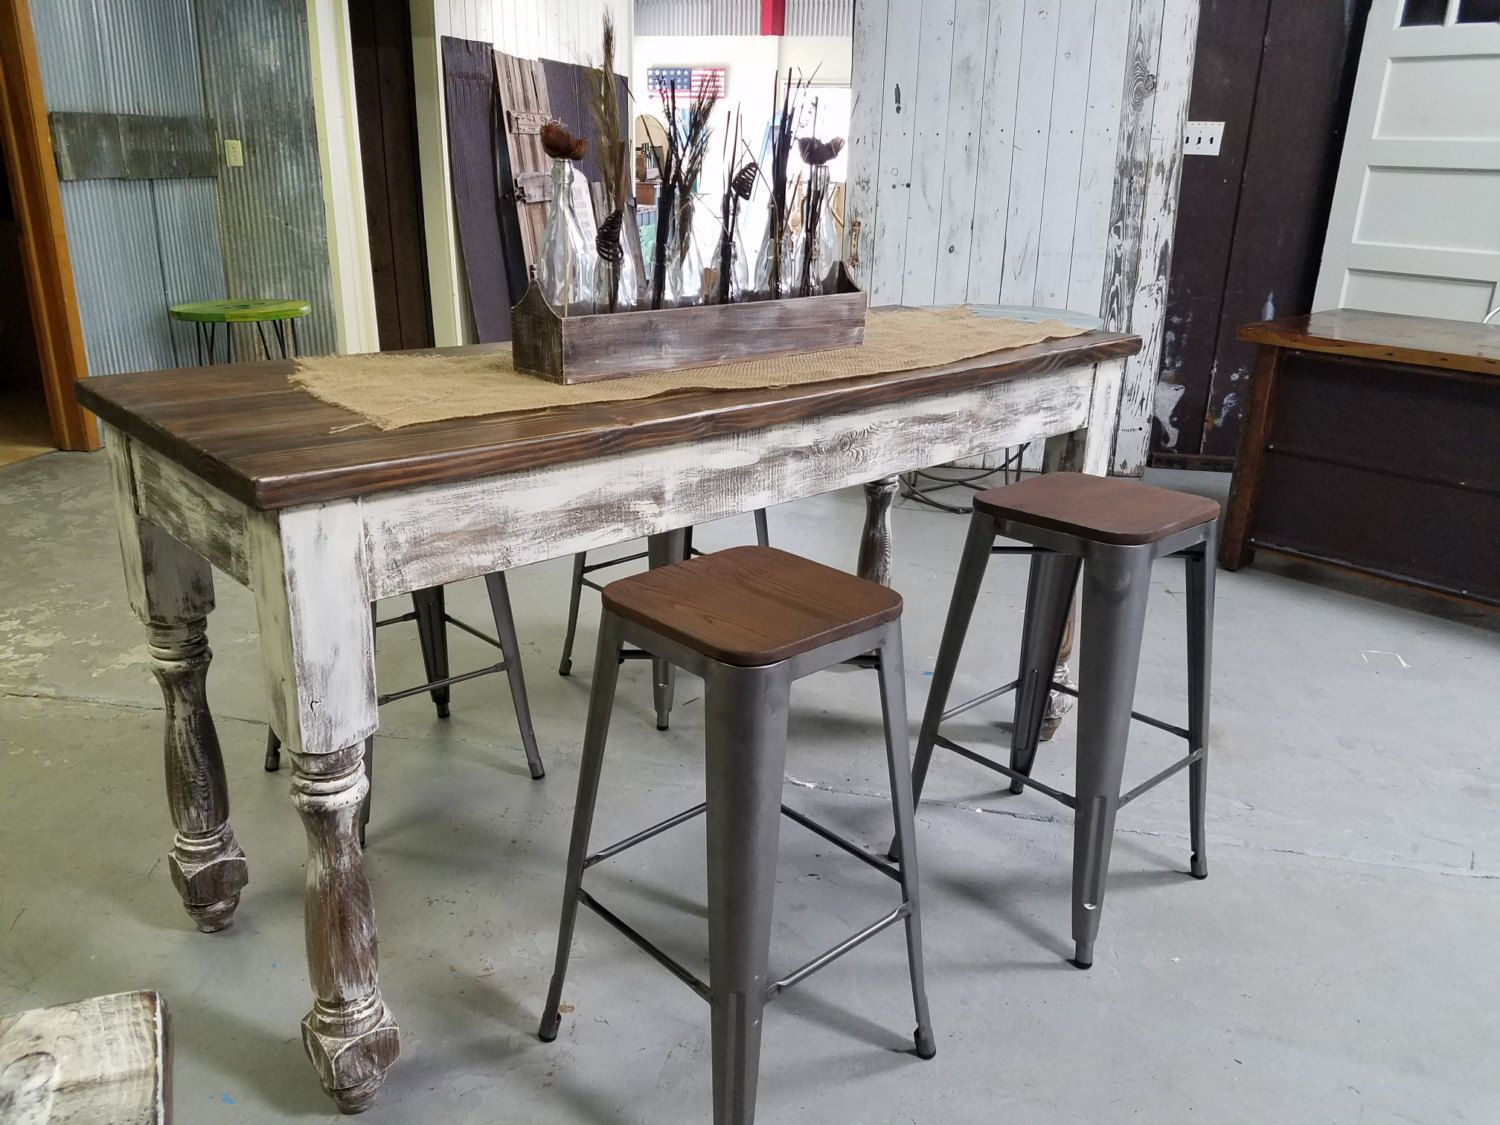 Excellent Rustic Ash Dining Table Made With Furniture Legs From Design Download Free Architecture Designs Rallybritishbridgeorg